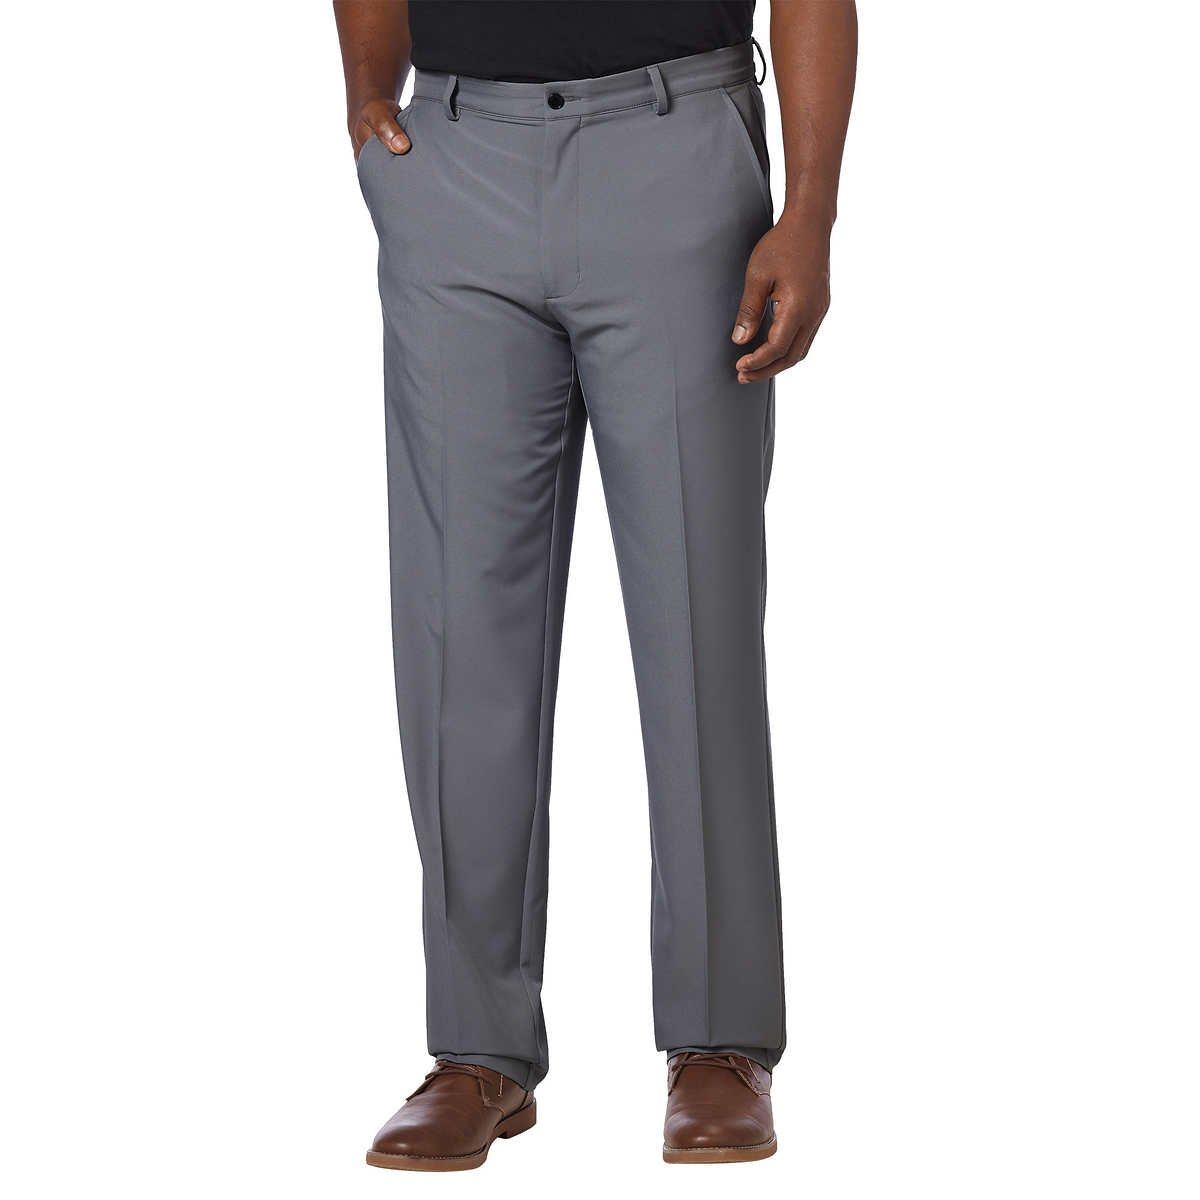 Greg Norman Mens ML75 Ultimate Travel Golf Pants (30W x 32L, Steel) by Greg Norman (Image #1)